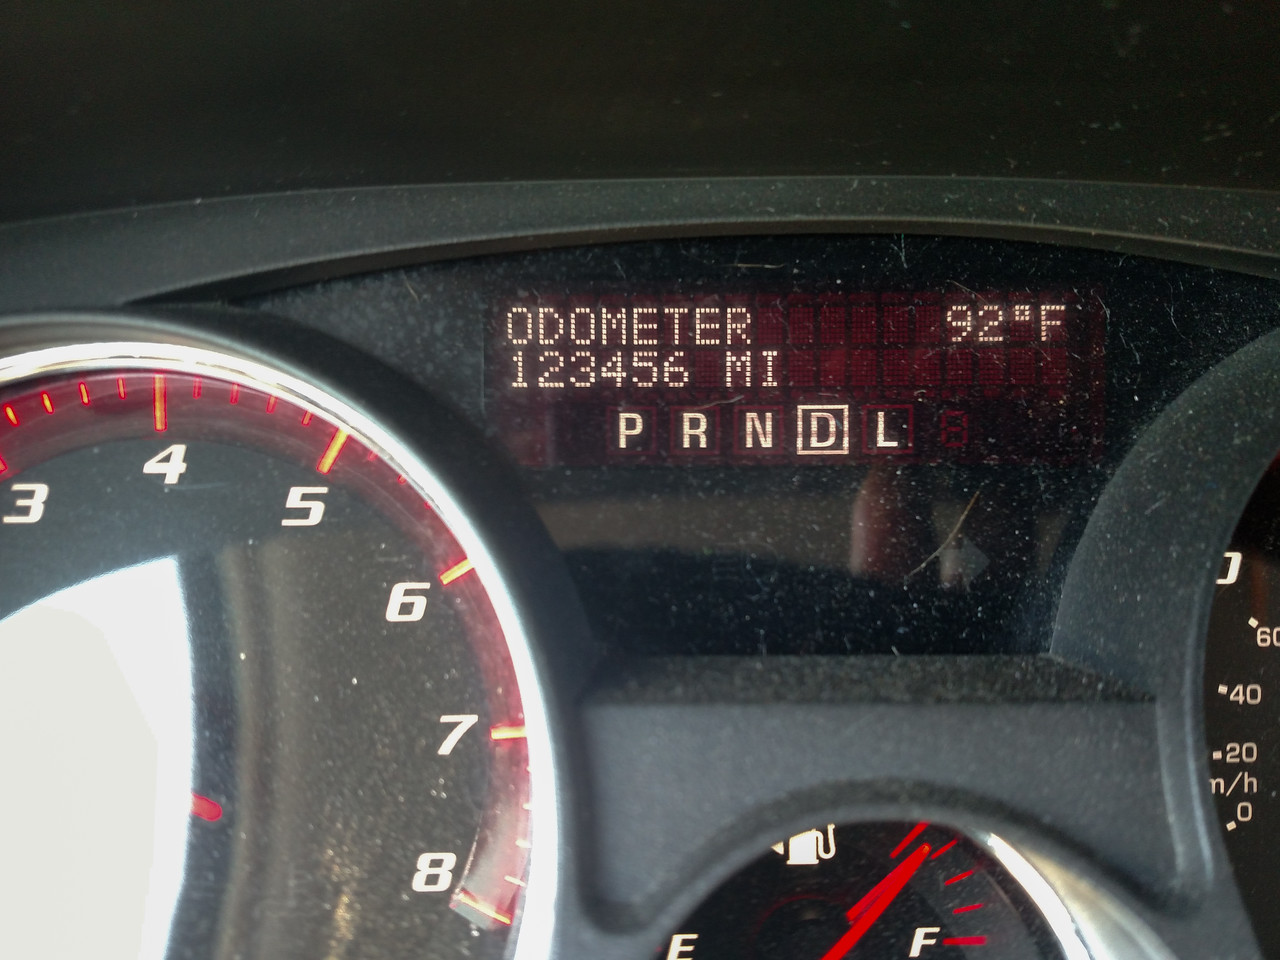 This happened just west of Lincoln, NE.  When we got home it read 123,868, total trip mileage was 3,815 miles.